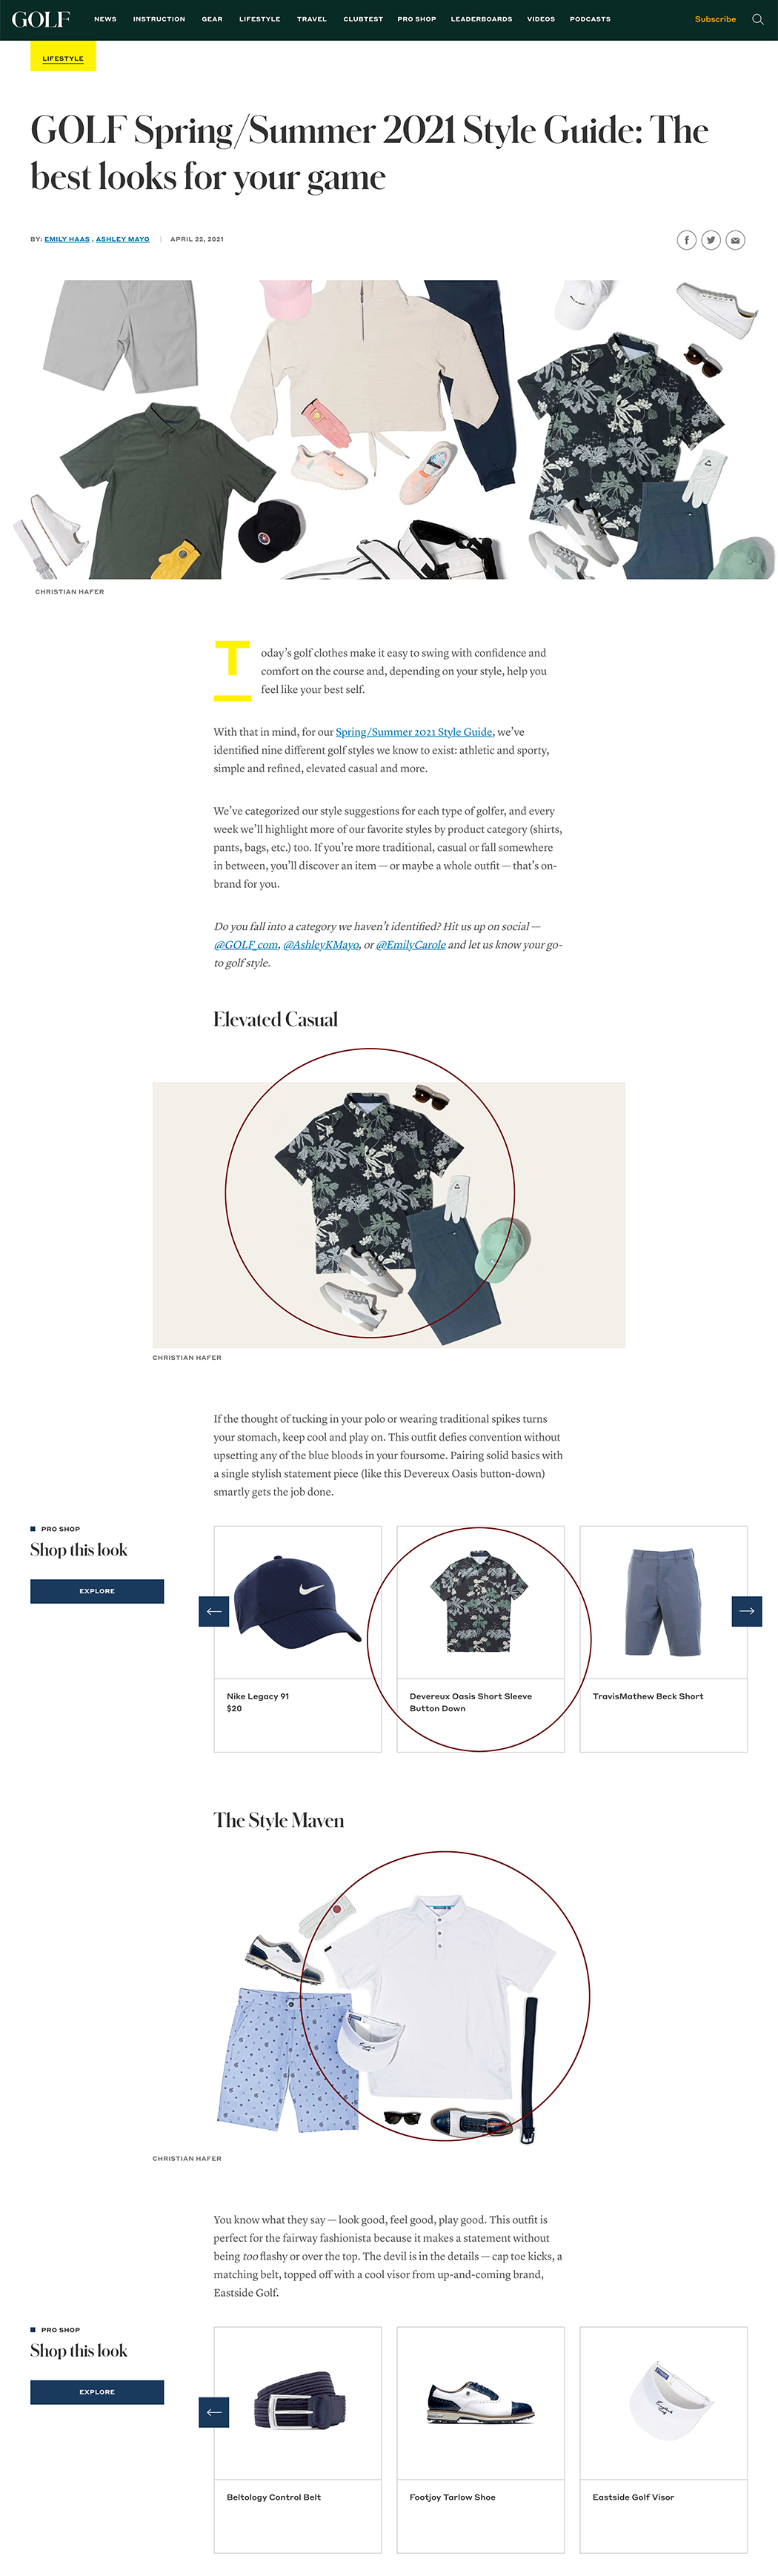 GOLF.com_Devereux_GOLF Spring/Summer 2021 Style Guide: The best looks for your game